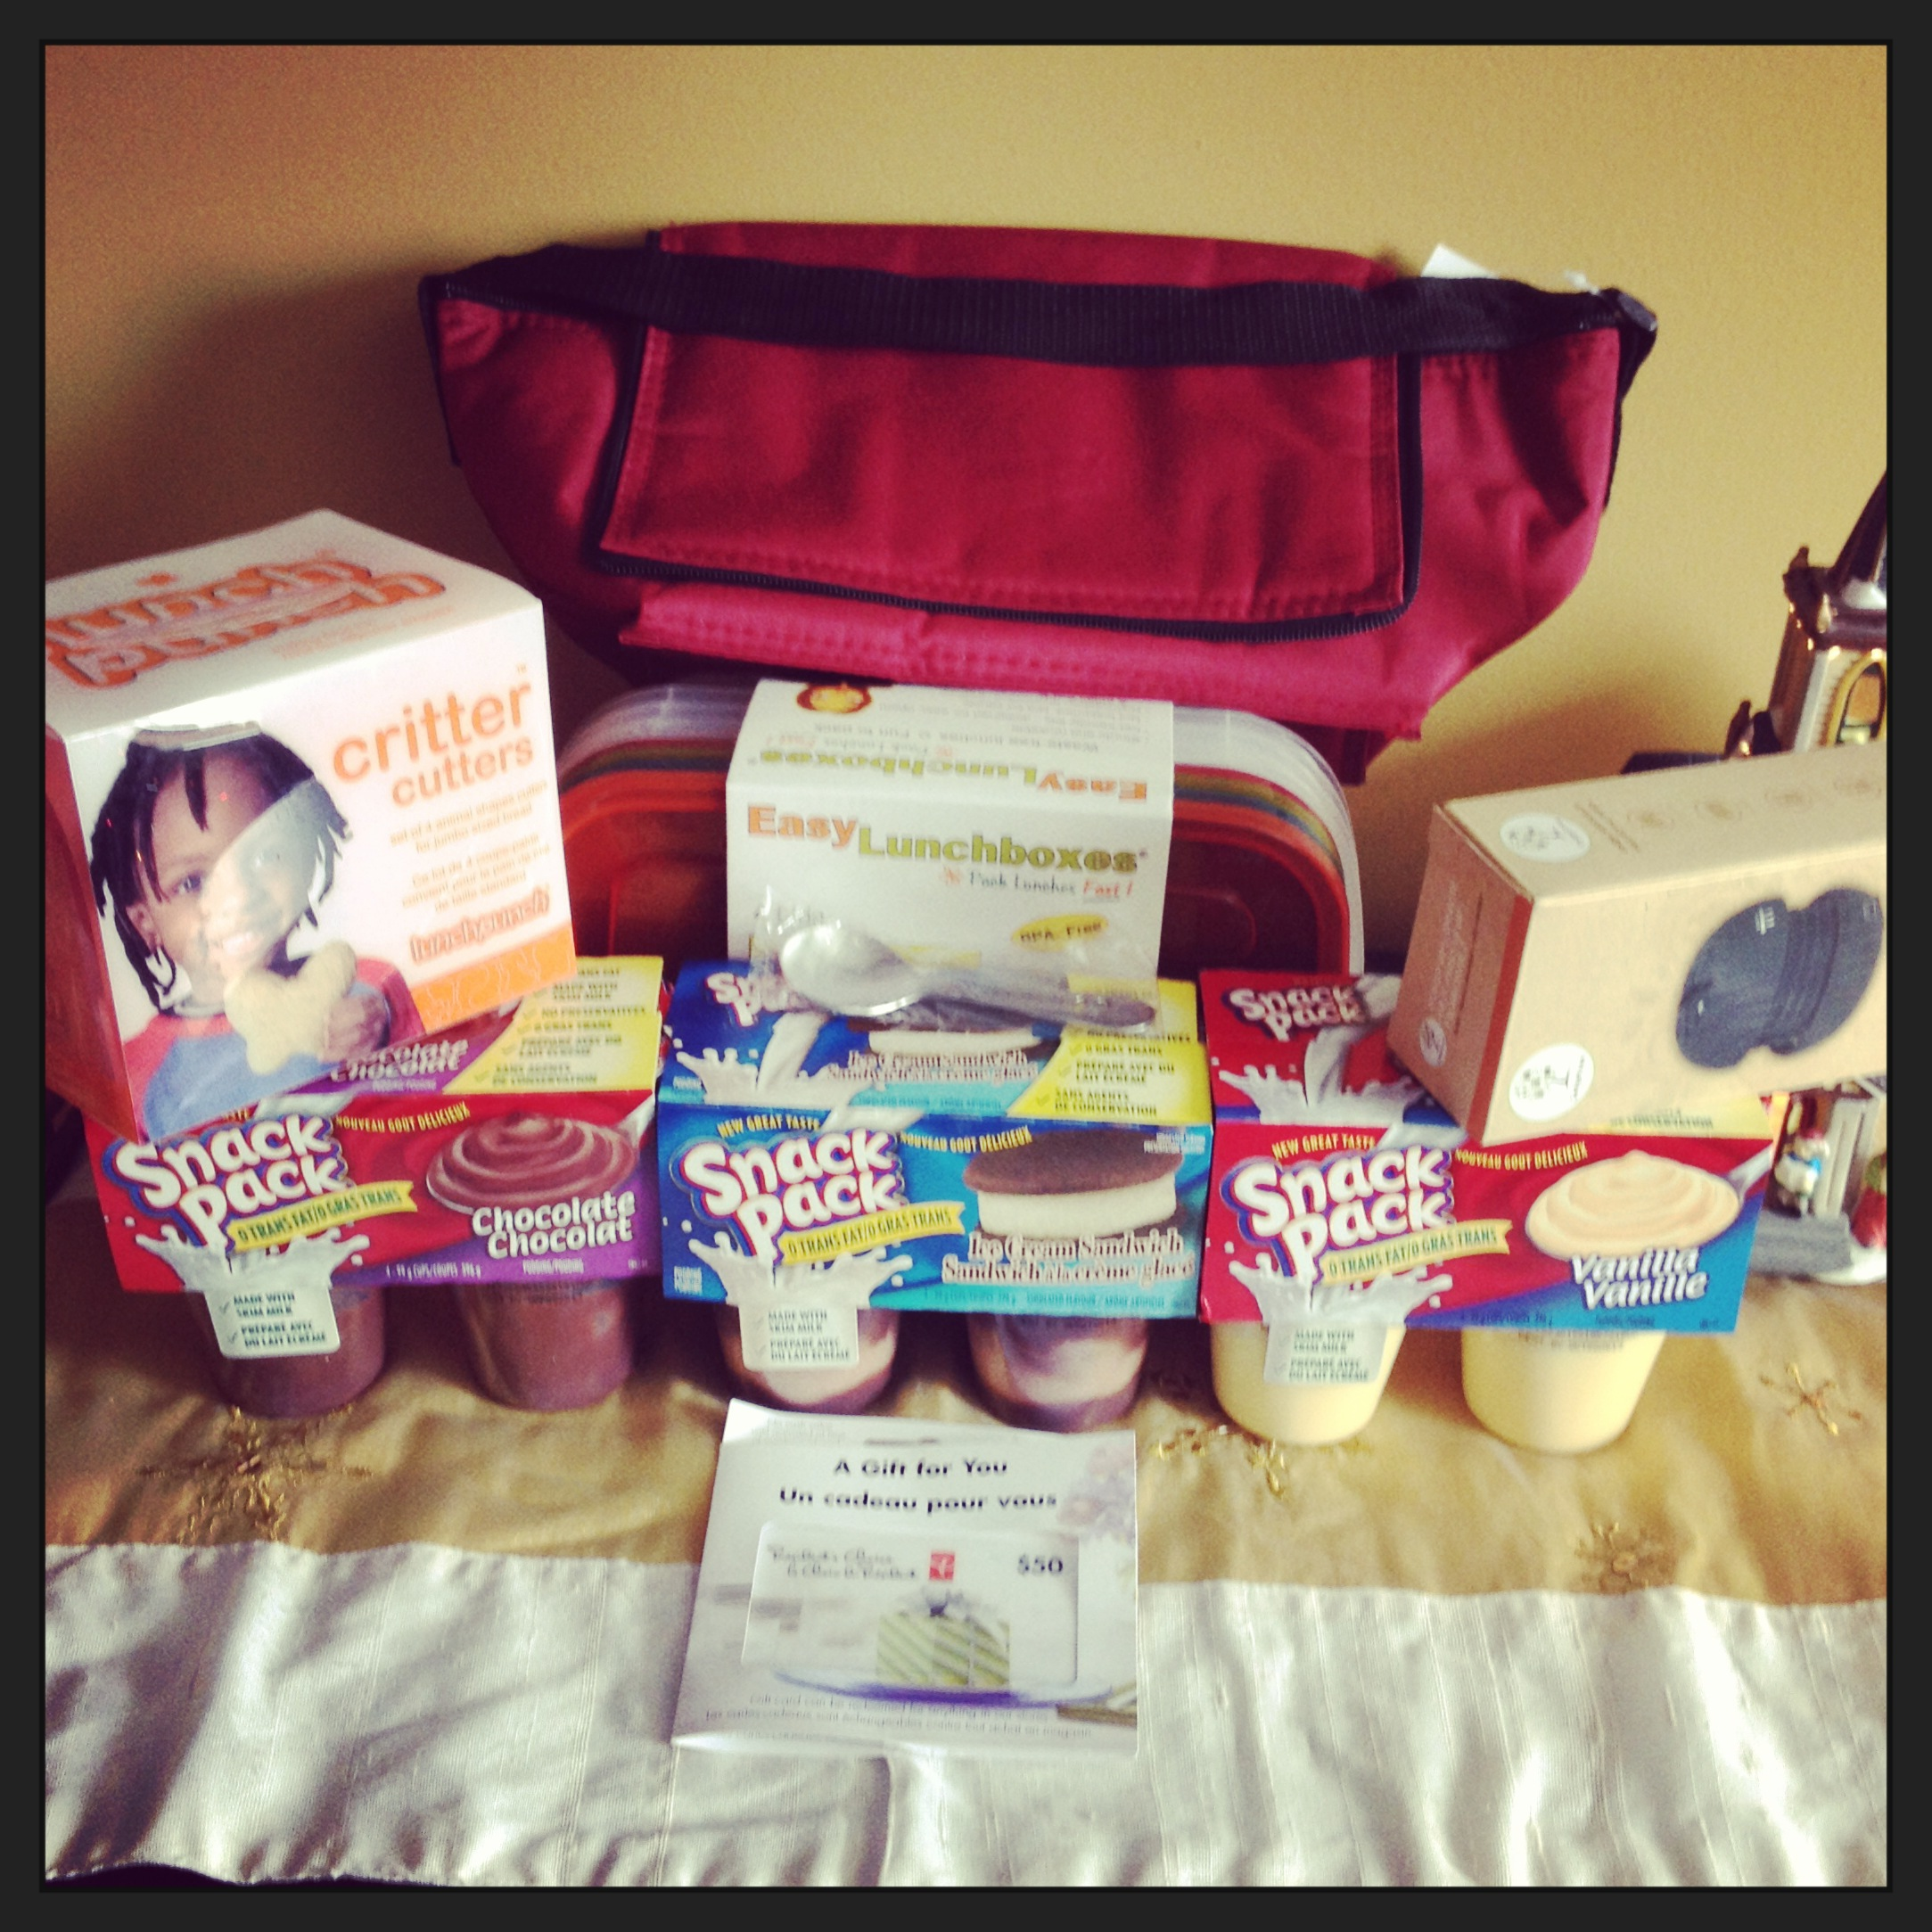 Snack Pack Prize Pack